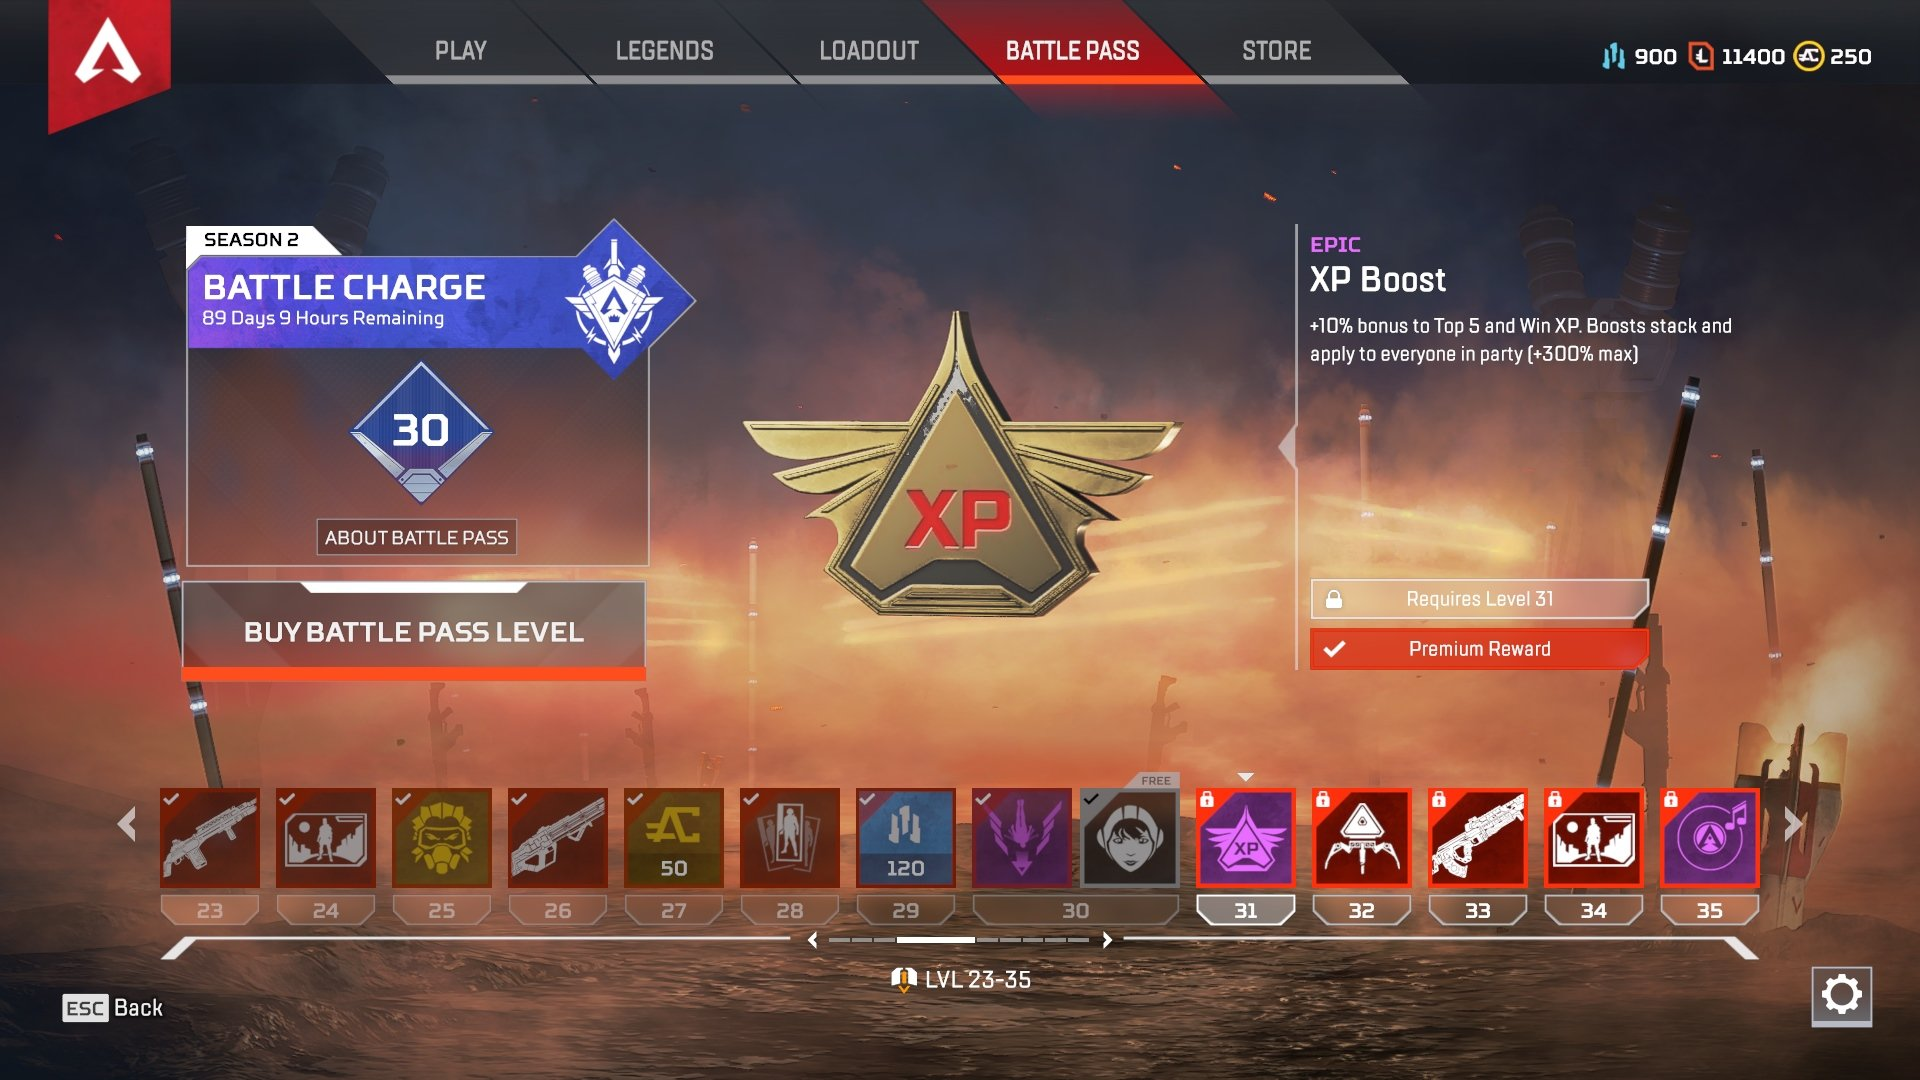 How to level up Season 2 Battle Pass quickly in Apex Legends